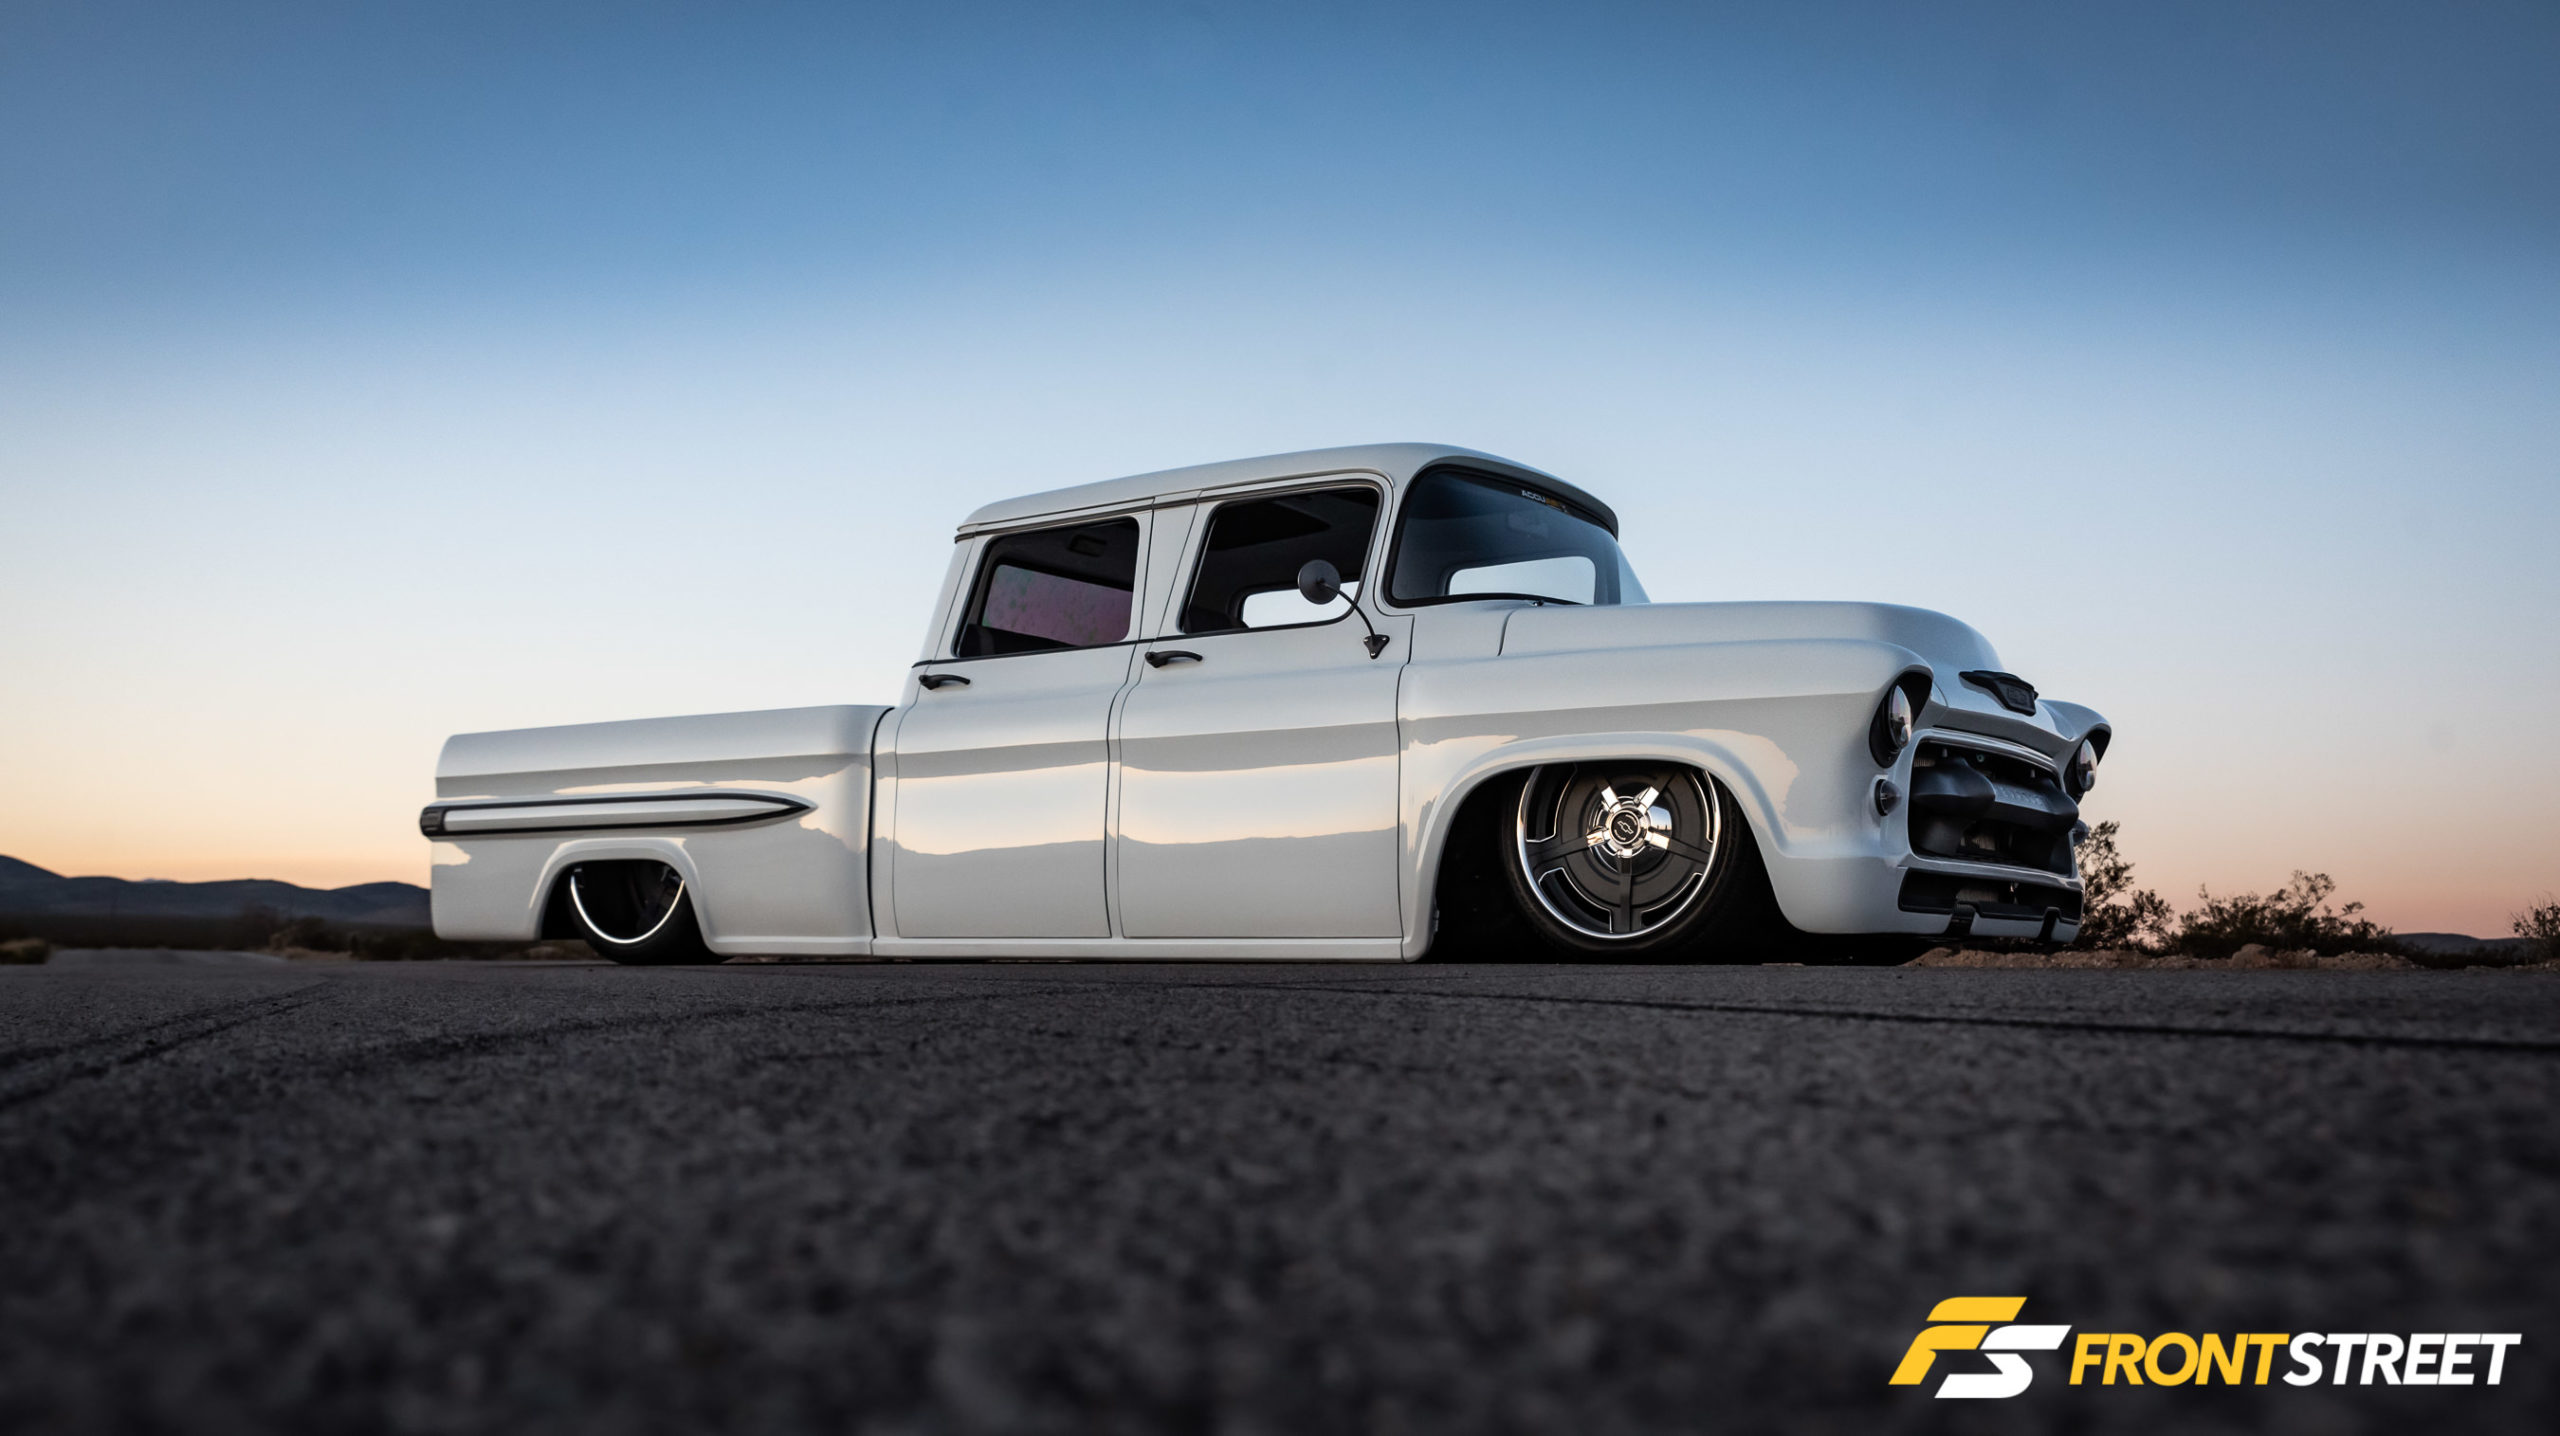 California Dreamin': Pure Metal Works' Twin-Turbo Diesel '55 Crew Cab